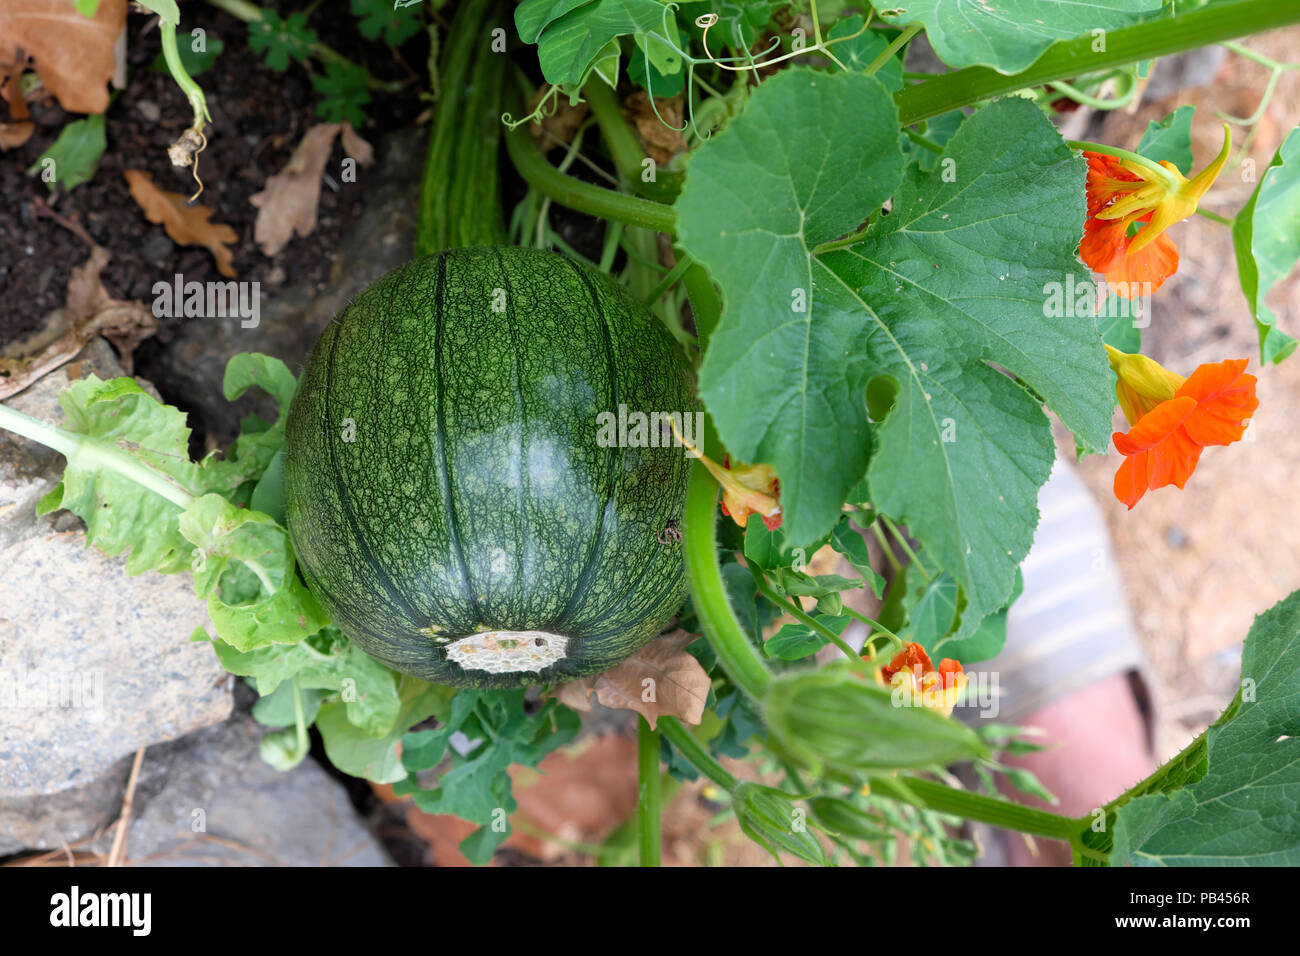 Hybridised courgette zucchini squash vegetable plant growing in summer 2018 garden in Carmarthenshire Wales UK  KATHY DEWITT Stock Photo